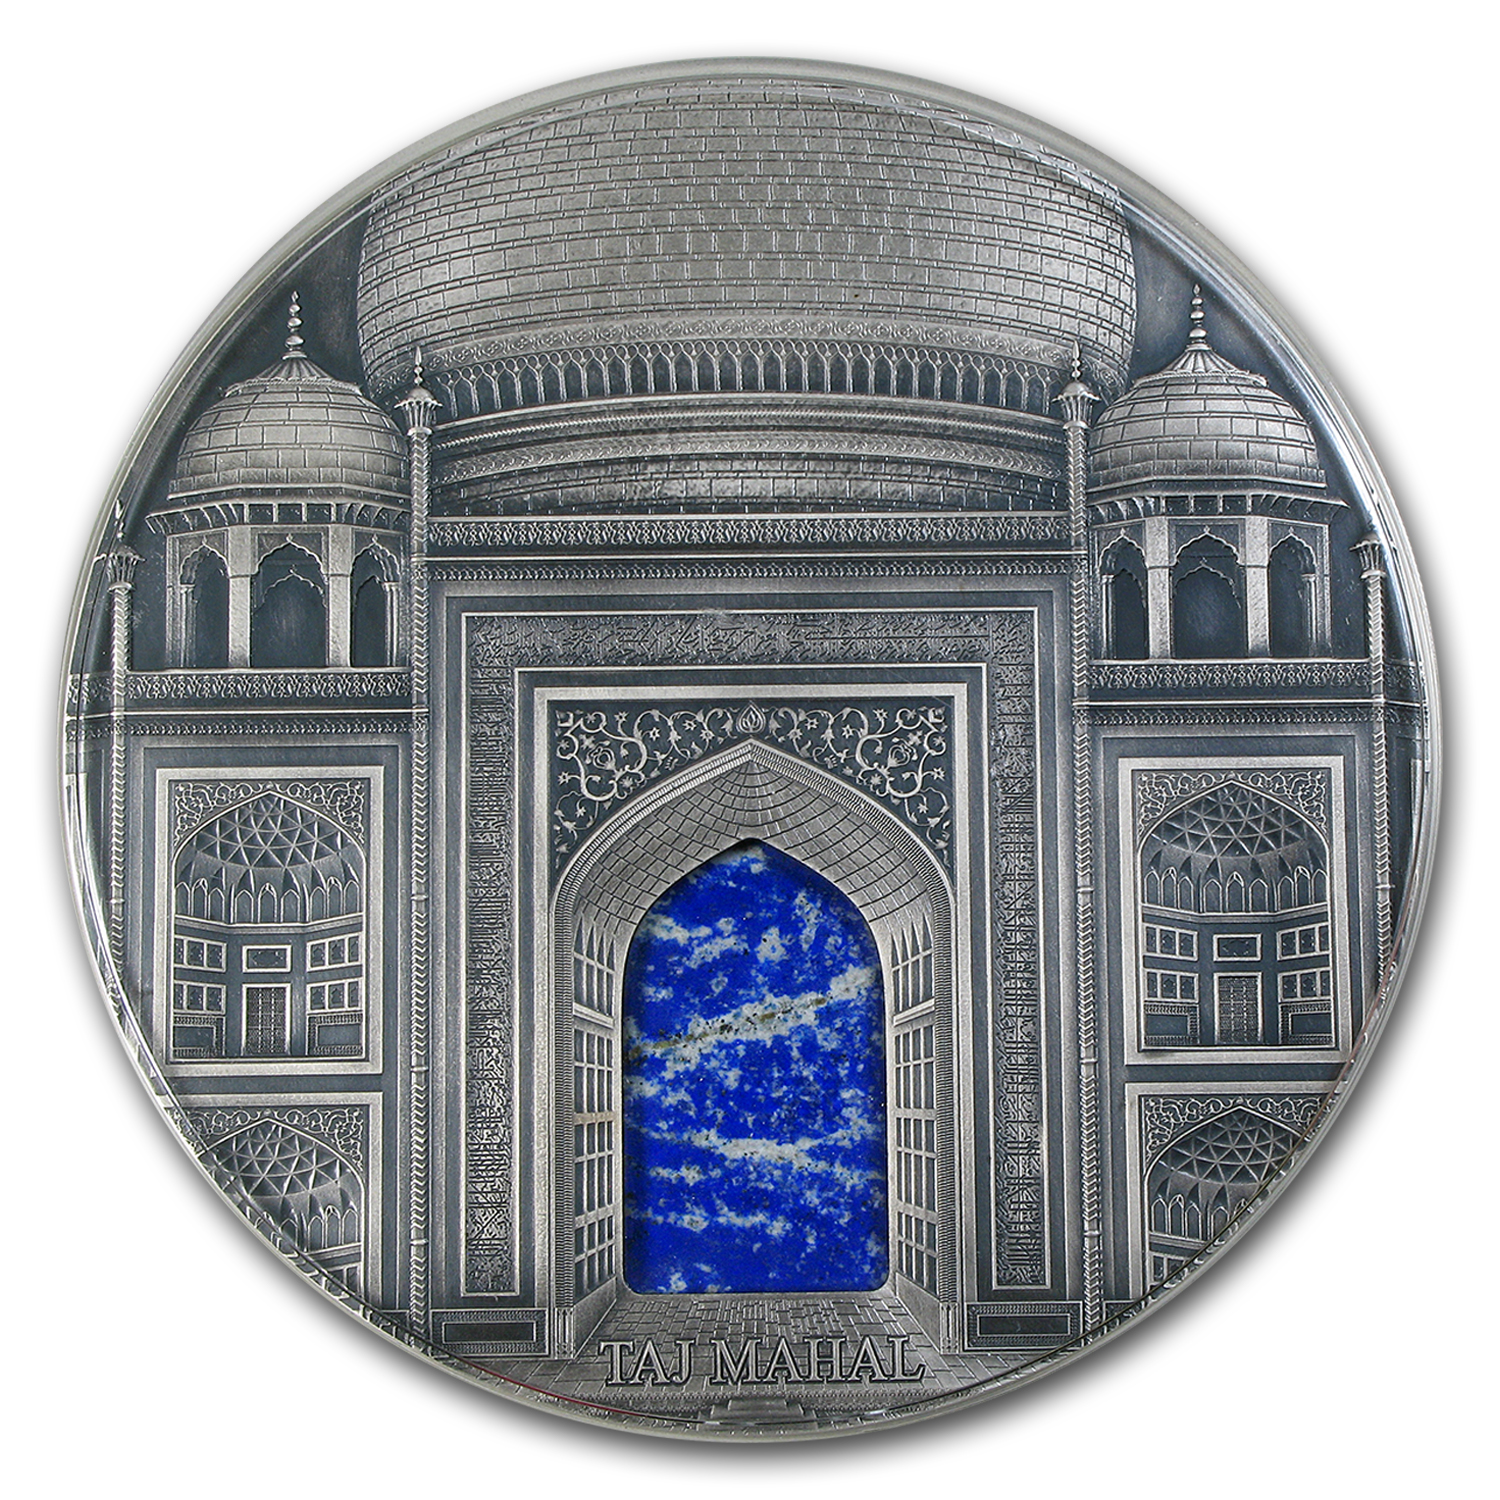 2014 Fiji 1 kilo Silver Taj Mahal Antique Finish Coin